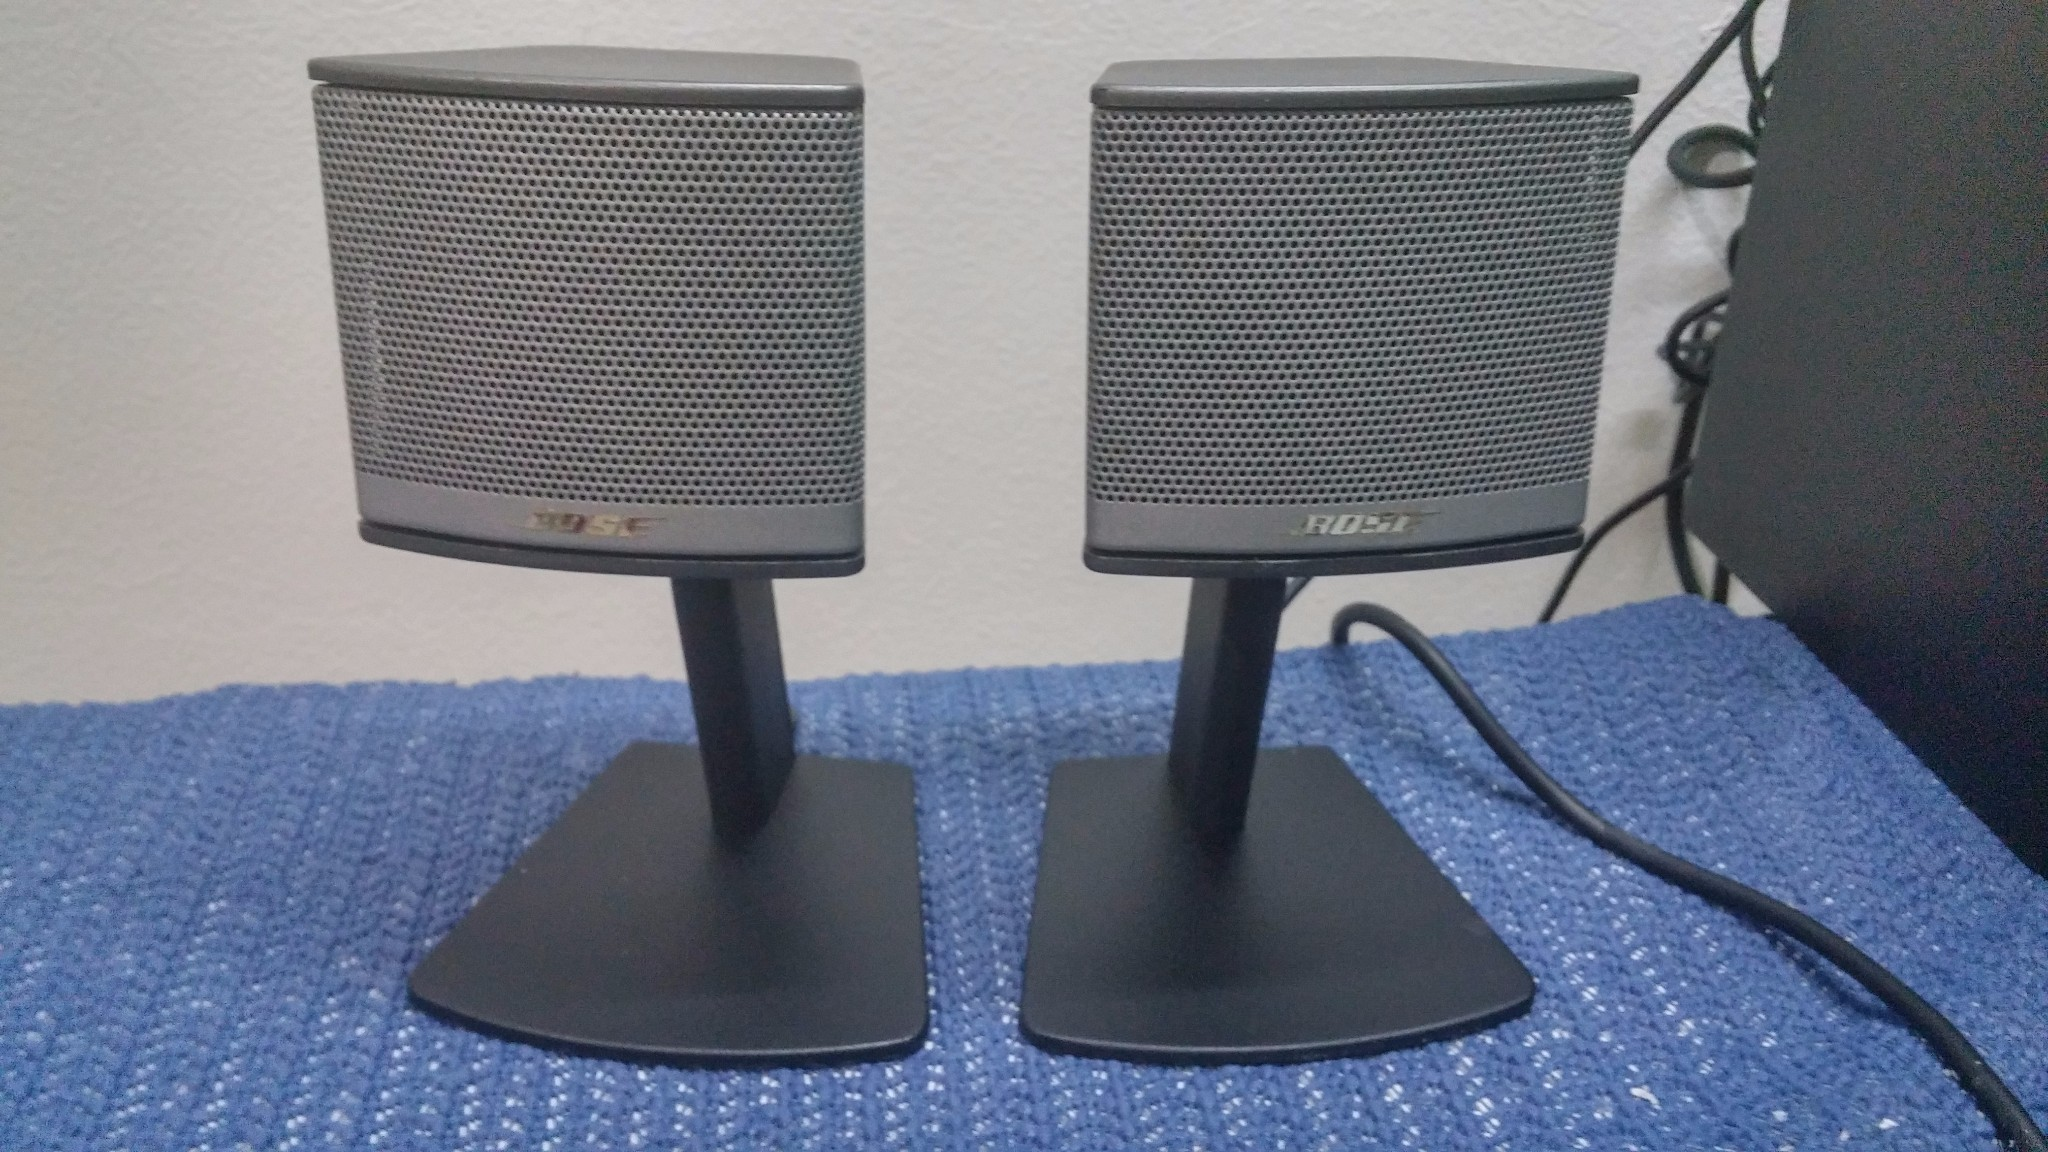 Jual Speaker BOSE Companion 3 Series II Best Speaker All